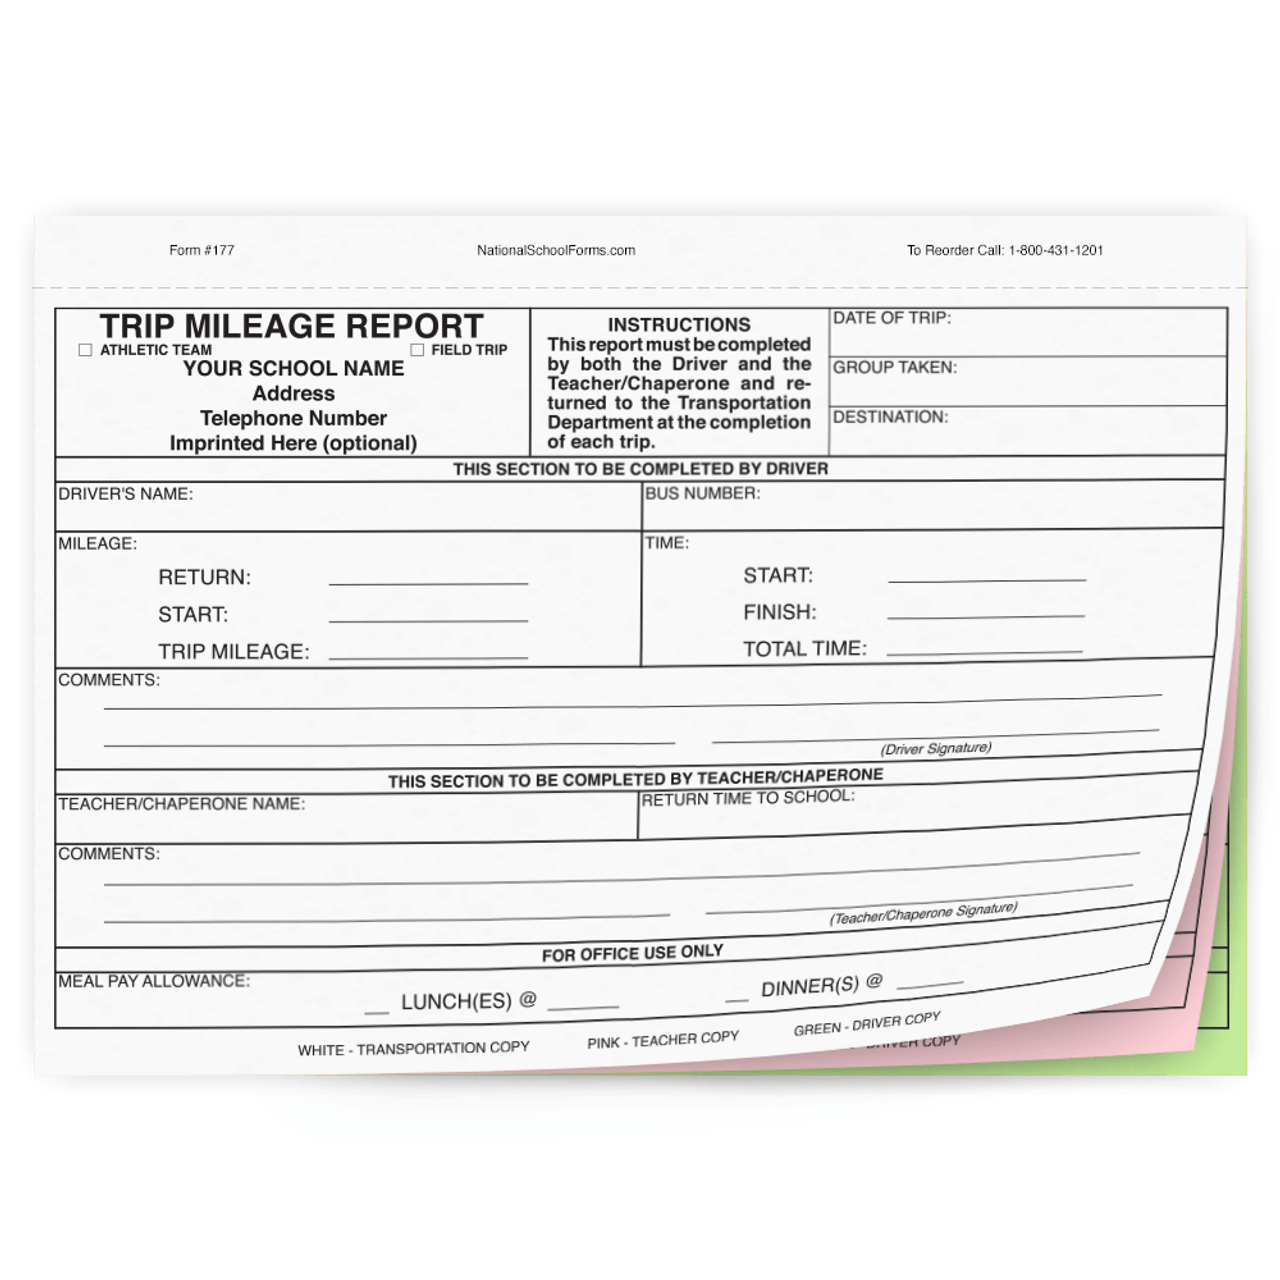 Trip Mileage Report (177) 3 part carbonless form with optional Imprint